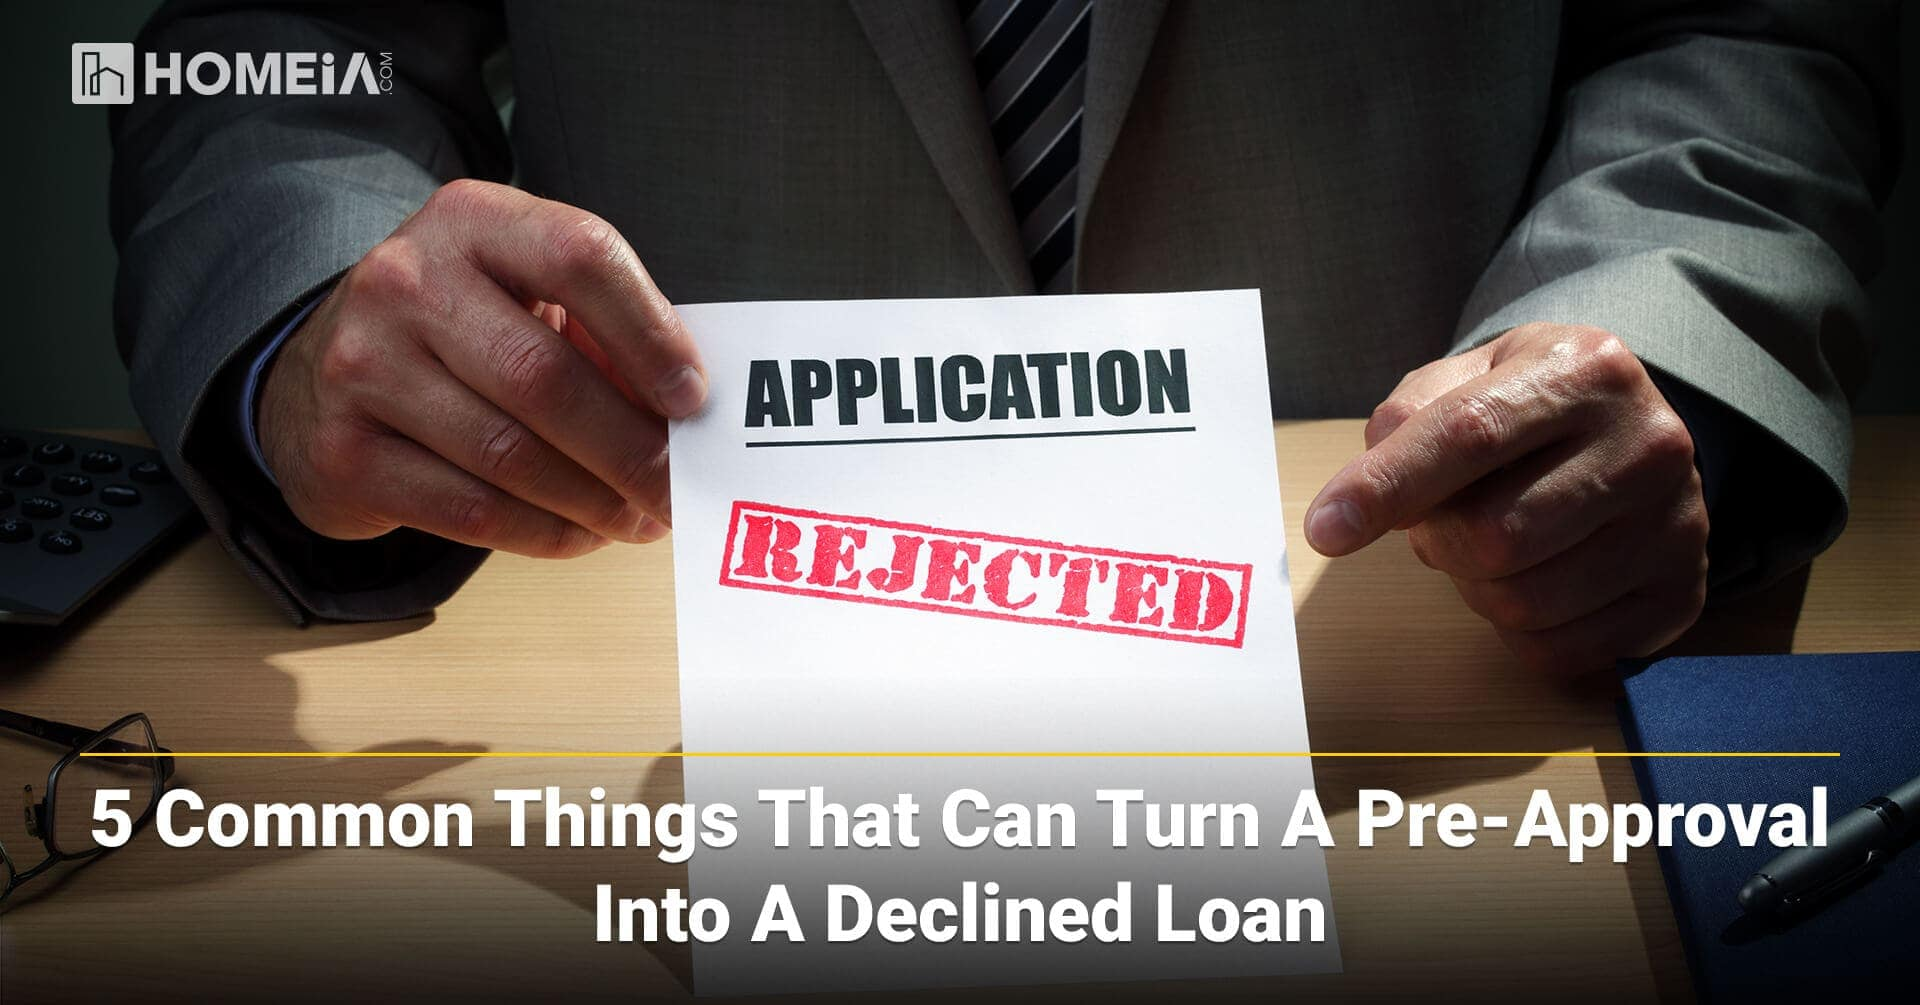 5 Common Things that Can Turn a Pre-Approval into a Declined Loan